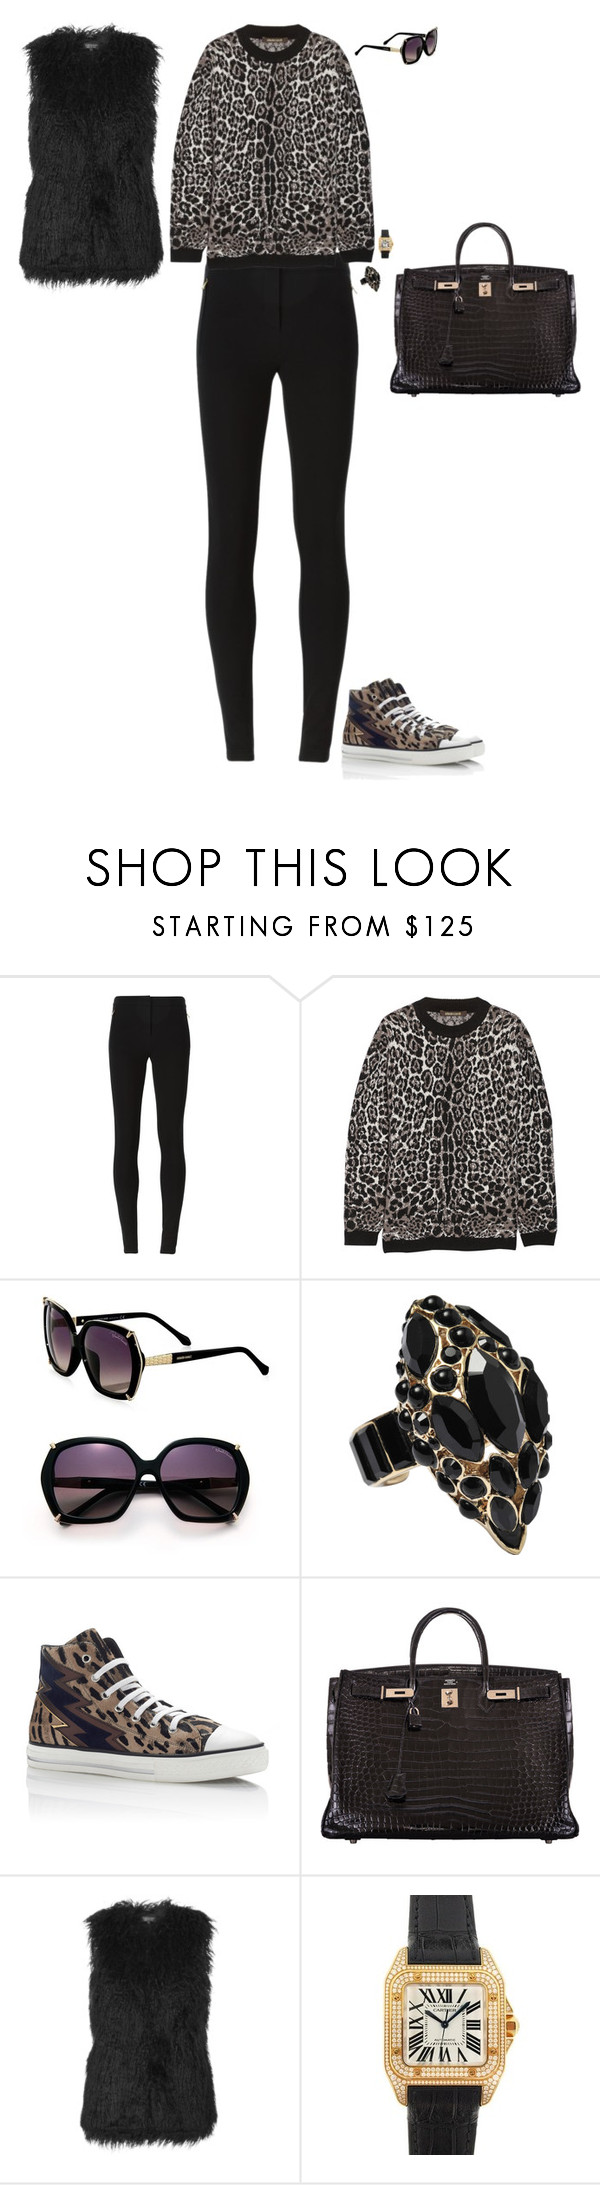 """""""Hi-lo moment"""" by stylev ❤ liked on Polyvore featuring Roberto Cavalli, Hermès, Topshop and Cartier"""